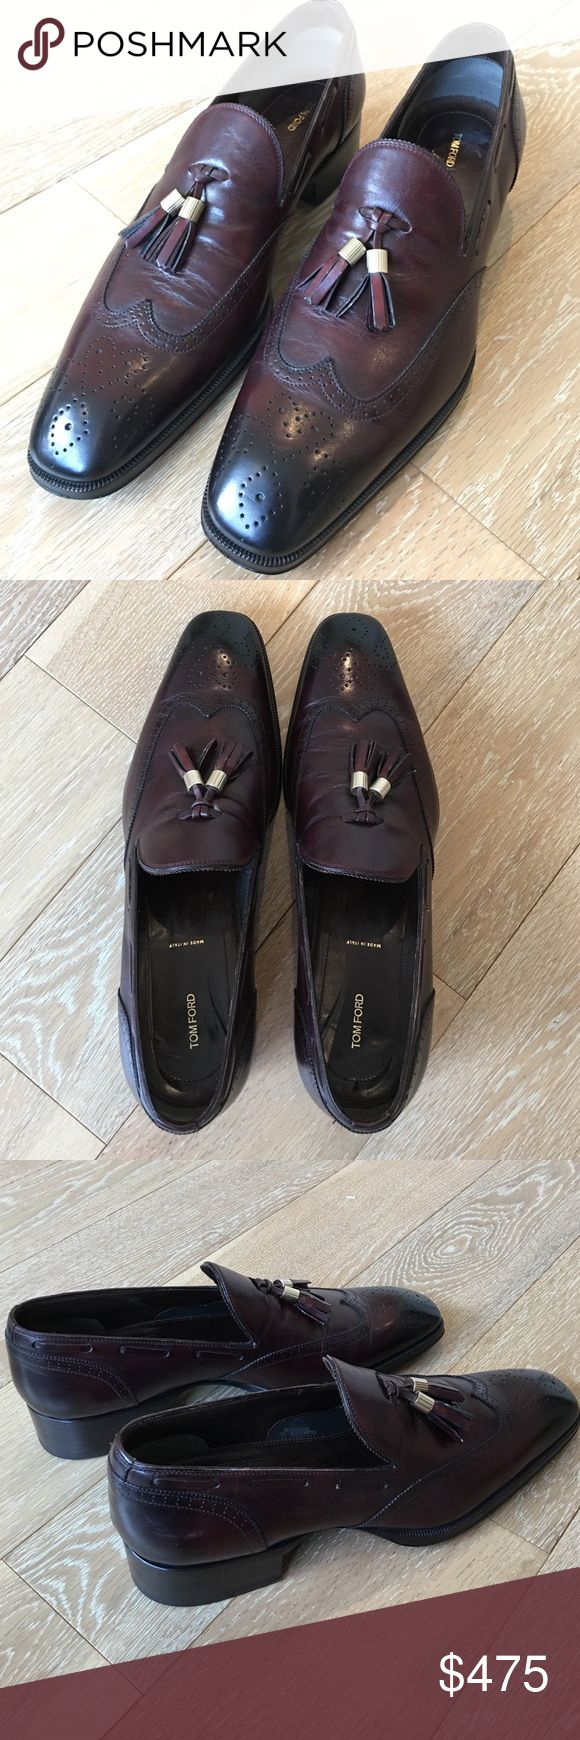 Tom Ford dark red/ black shoes Beautiful Tom Ford loafers, dark red with black fade. Only worn a few times, with serial number, all leather. Tom Ford Shoes Loafers & Slip-Ons